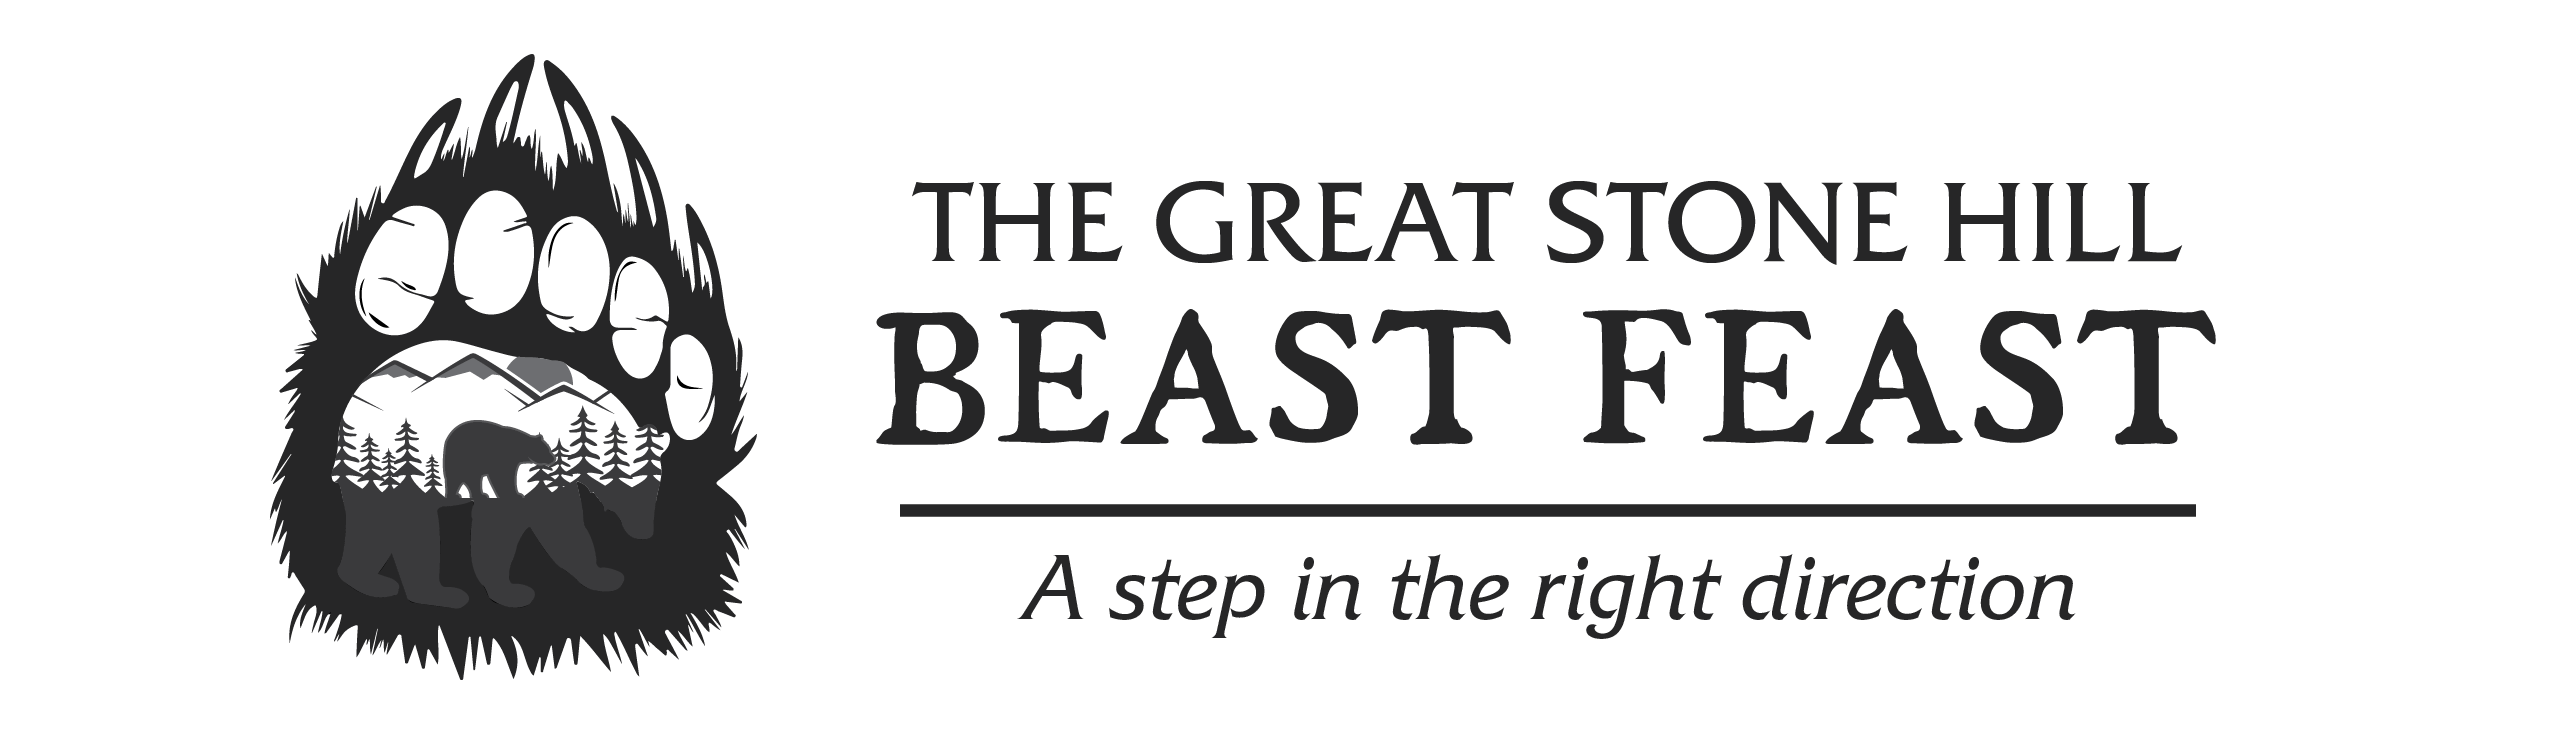 Beast Feast Tickets 2019 MAIN